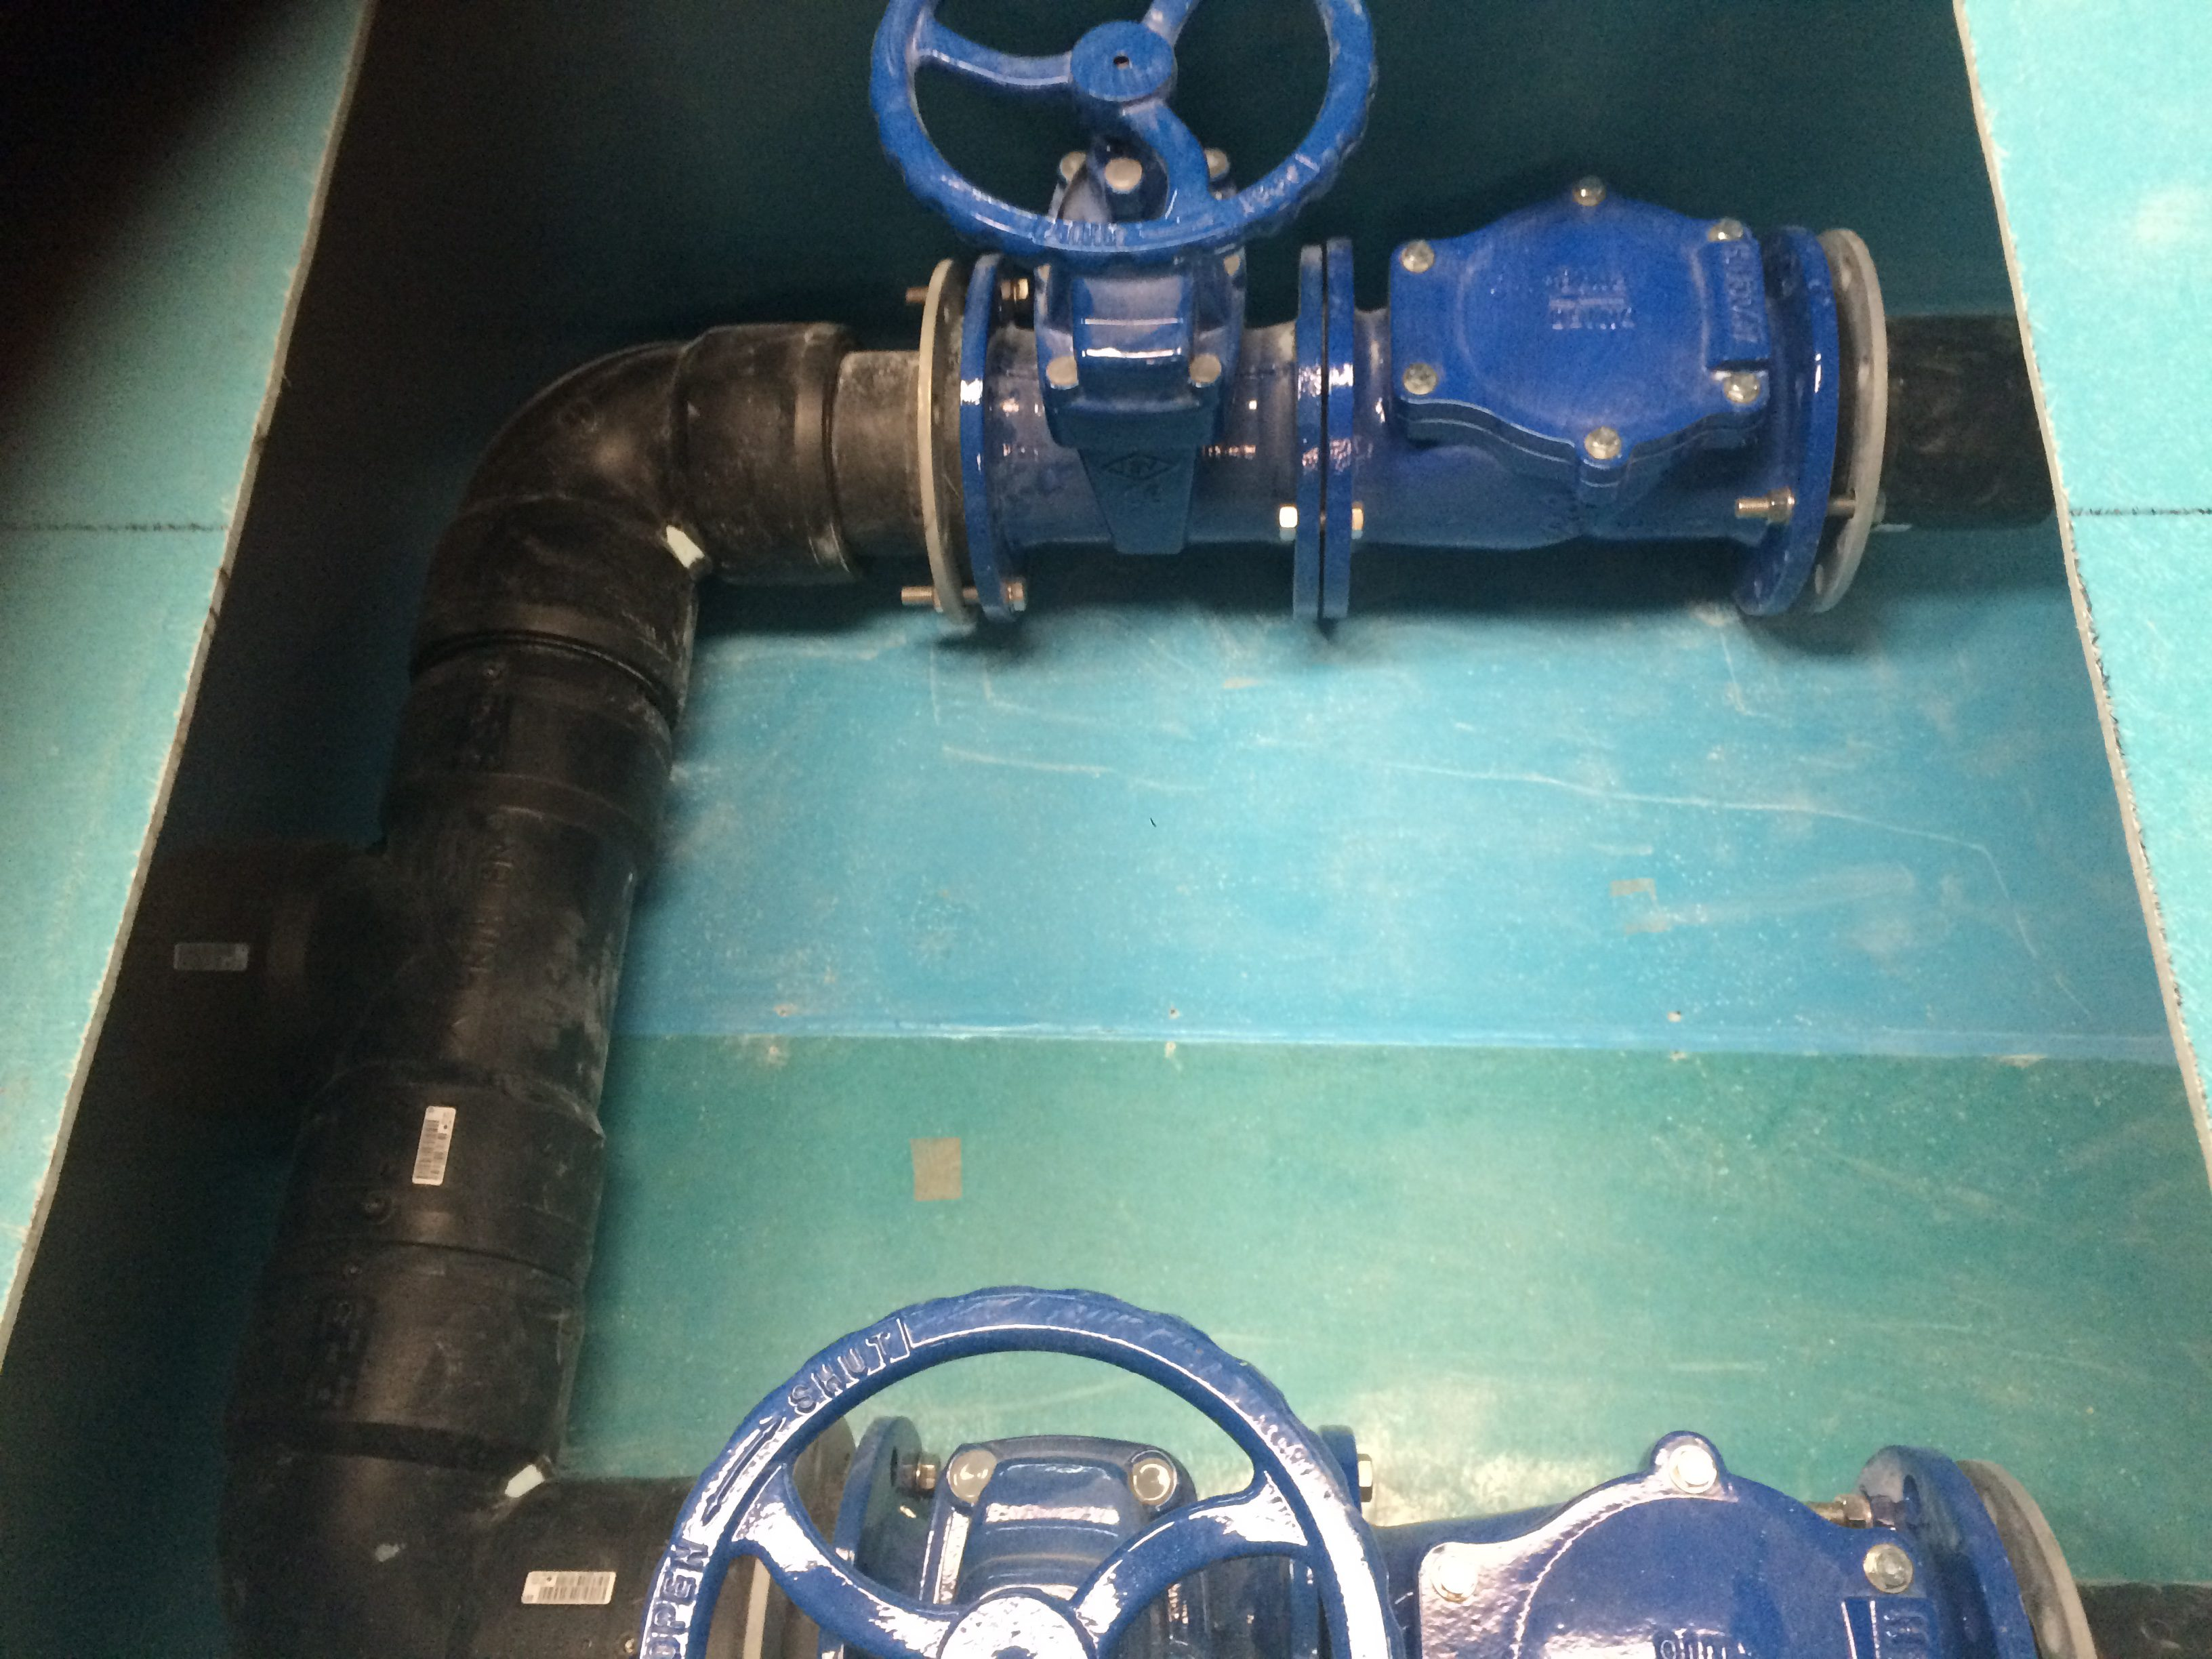 Top View of Package GRP Valve Chamber. The Valve Chamber is integrated into the side of the Pump Station